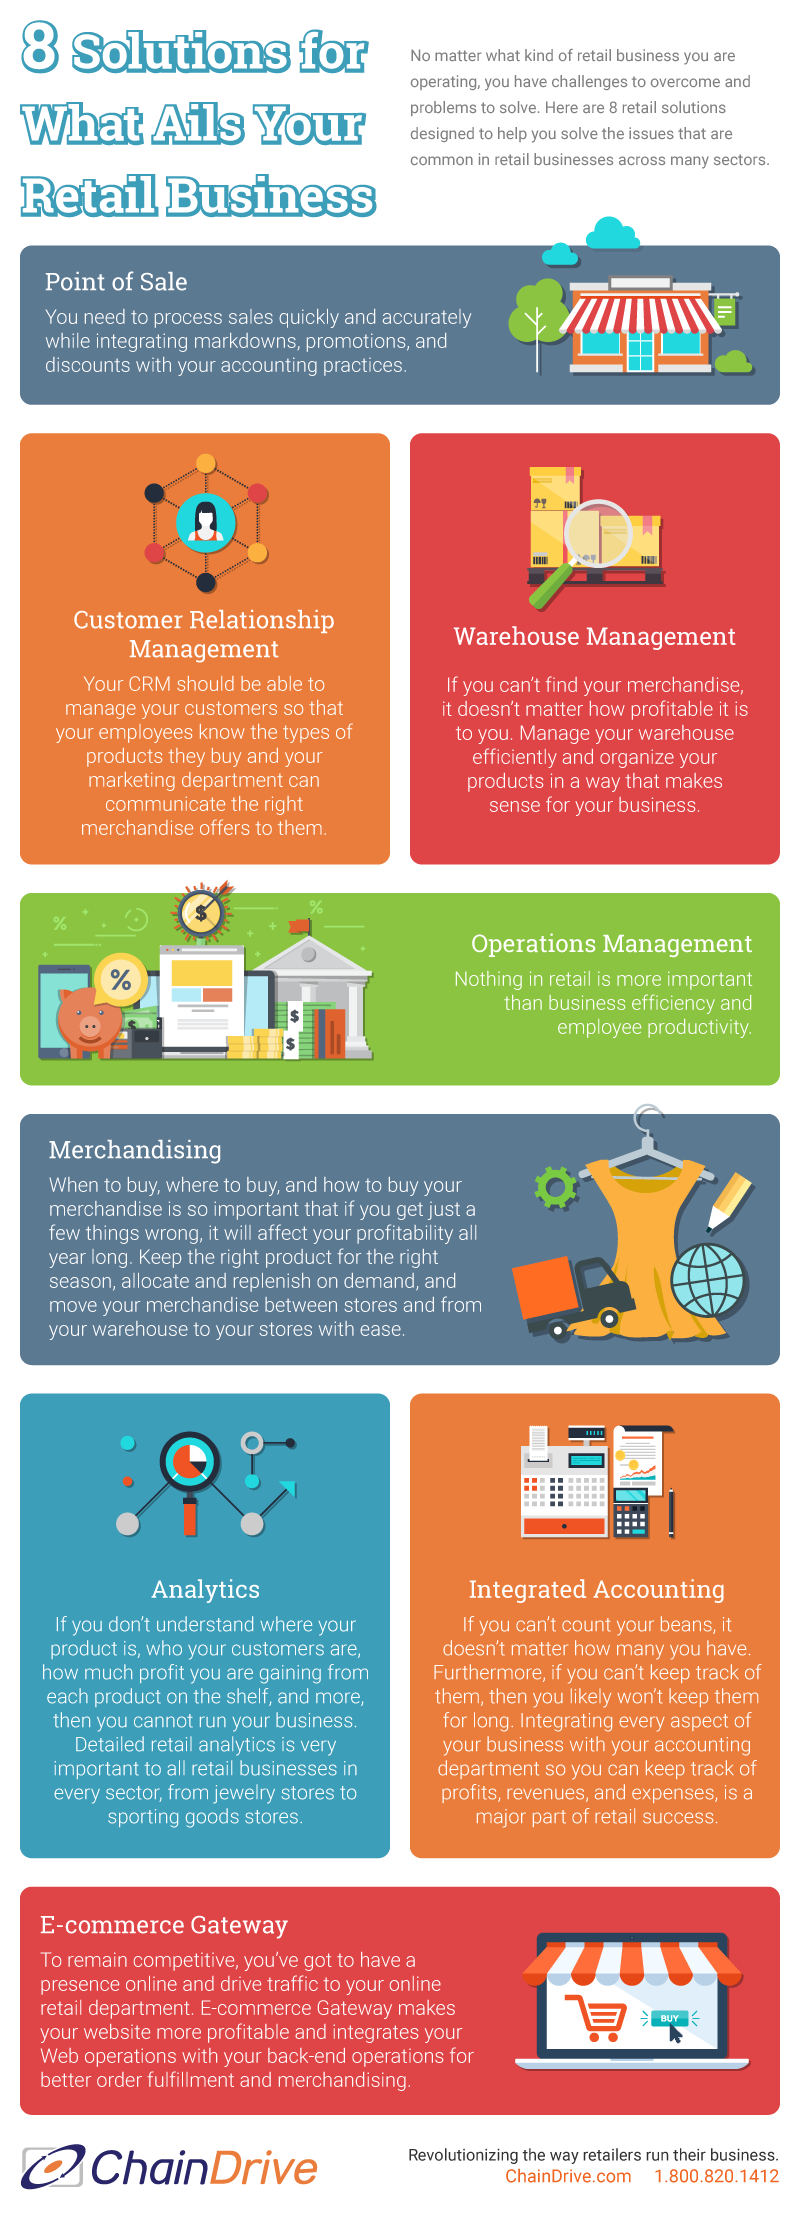 8 Solutions for What Ails Your Retail Business